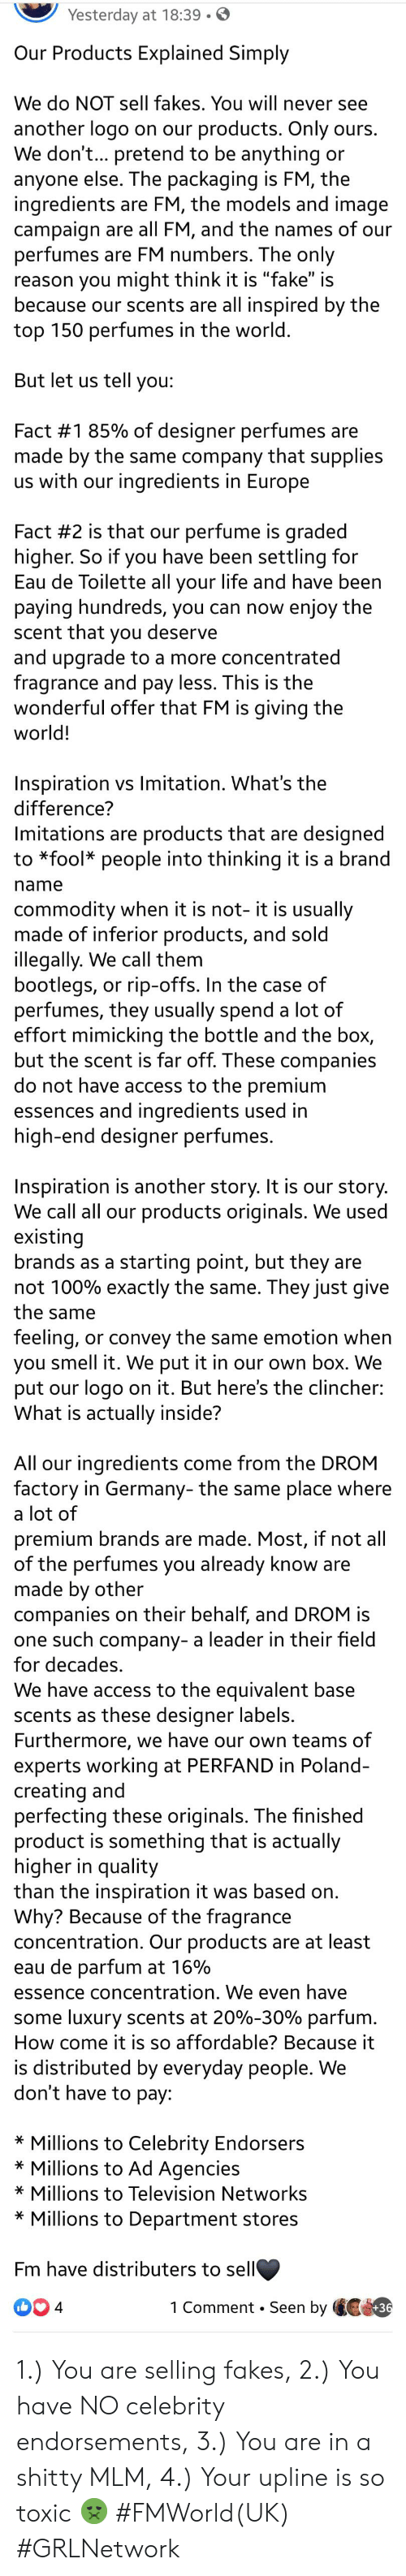 """a-starting-point: Yesterday at 18:39.  Our Products Explained Simply  We do NOT sell fakes. You will never see  another logo on our products. Only ours.  We don't... pretend to be anything or  anyone else. The packaging is FM, the  ingredients are FM, the models and image  campaign are all FM, and the names of our  perfumes are FM numbers. The only  reason you might think it is """"fake"""" is  because our scents are all inspired by the  top 150 perfumes in the world.  But let us tell you:  Fact #1 85% of designer perfumes are  made by the same company that supplies  us with our ingredients in Europe  Fact #2 is that our perfume is graded  higher. So if you have been settling for  Eau de Toilette all your life and have been  paying hundreds, you can now enjoy the  scent that you deserve  and upgrade to a more concentrated  fragrance and pay less. This is the  wonderful offer that FM is giving the  world!  Inspiration vs Imitation. What's the  difference?  Imitations are products that are designed  to *fool people into thinking it is a brand  name  commodity when it is not- it is usually  made of inferior products, and sold  illegally. We call them  bootlegs, or rip-offs. In the case of  perfumes, they usually spend a lot of  effort mimicking the bottle and the box,  but the scent is far off. These companies  do not have access to the premium  essences and ingredients used in  high-end designer perfumes.  Inspiration is another story. It is our story.  We call all our products originals. We used  existing  brands as a starting point, but they are  not 100% exactly the same. They just give  the same  feeling, or convey the same emotion when  you smell it. We put it in our own box. We  put our logo on it. But here's the clincher:  What is actually inside?  All our ingredients come from the DROM  factory in Germany- the same place where  a lot of  premium brands are made. Most, if not all  of the perfumes you already know are  made by other  companies on their behalf, and DRO"""